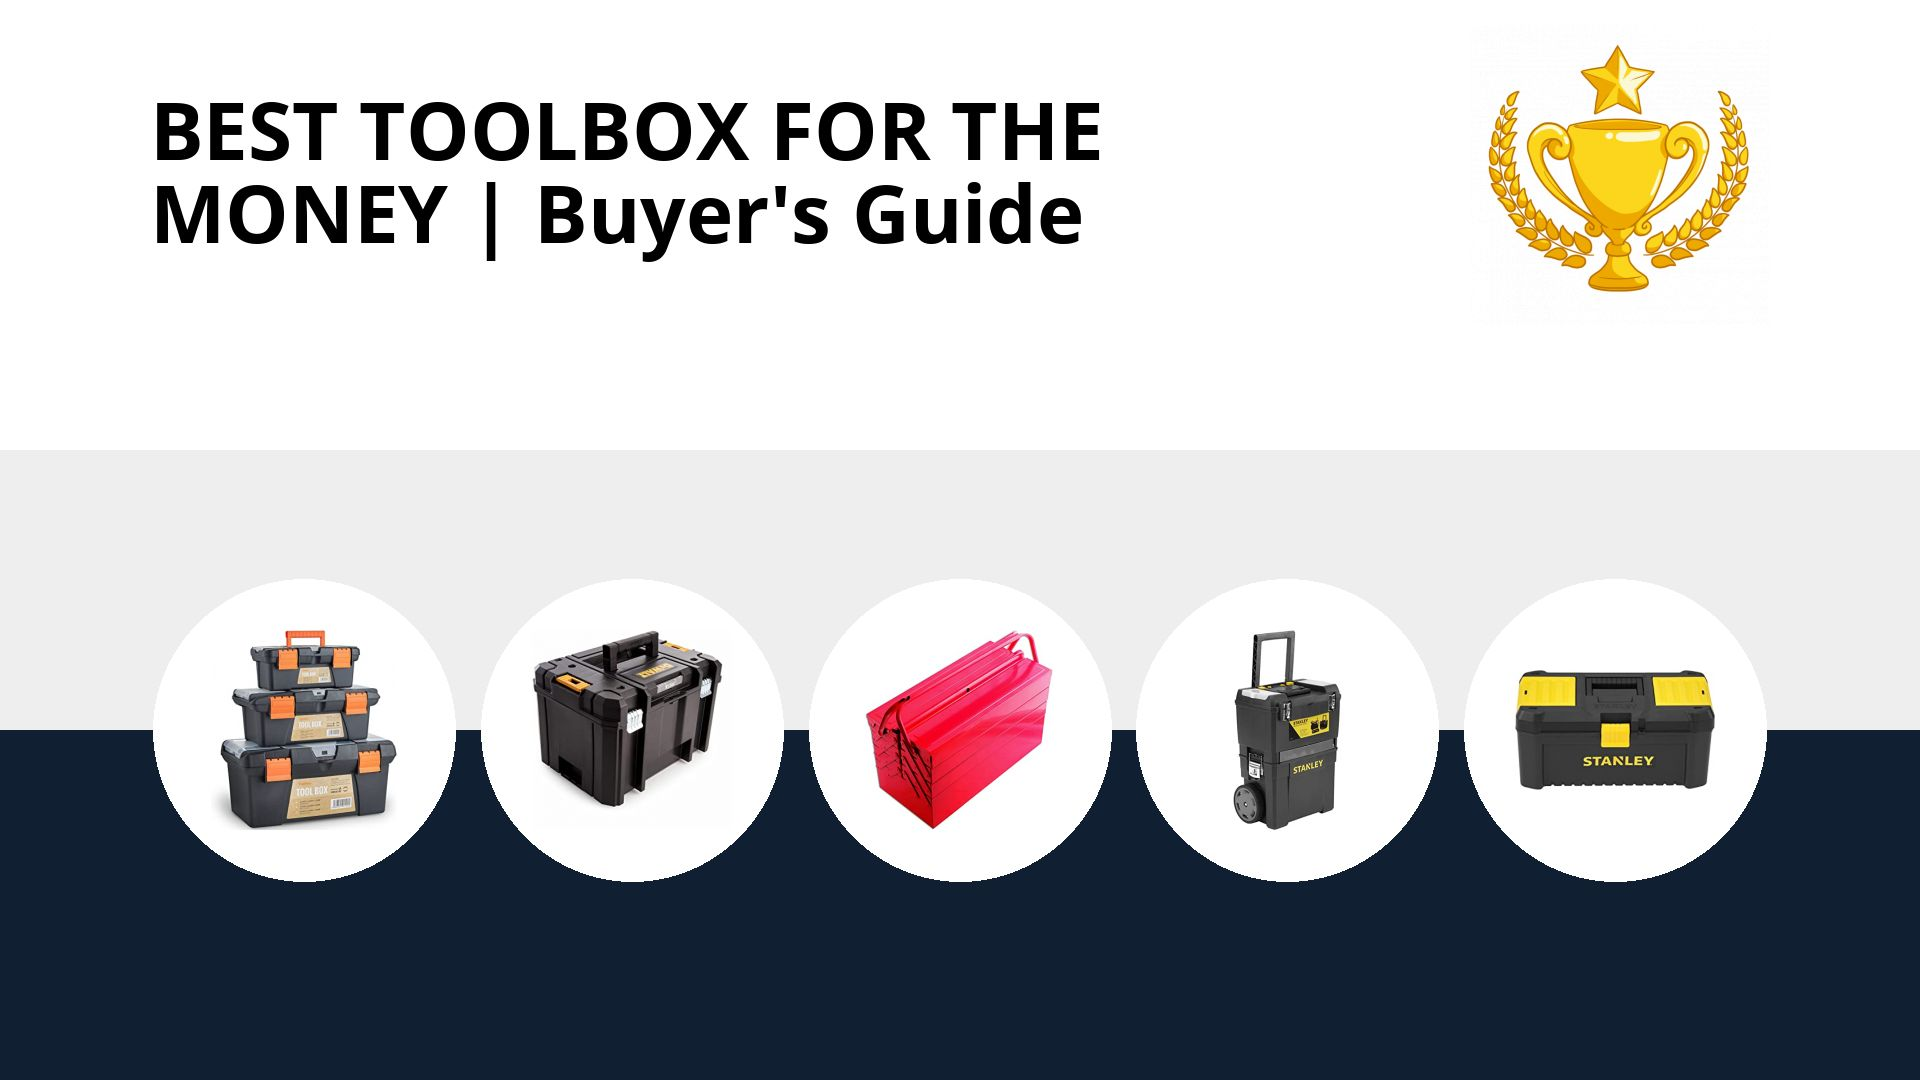 Best Toolbox For The Money: image